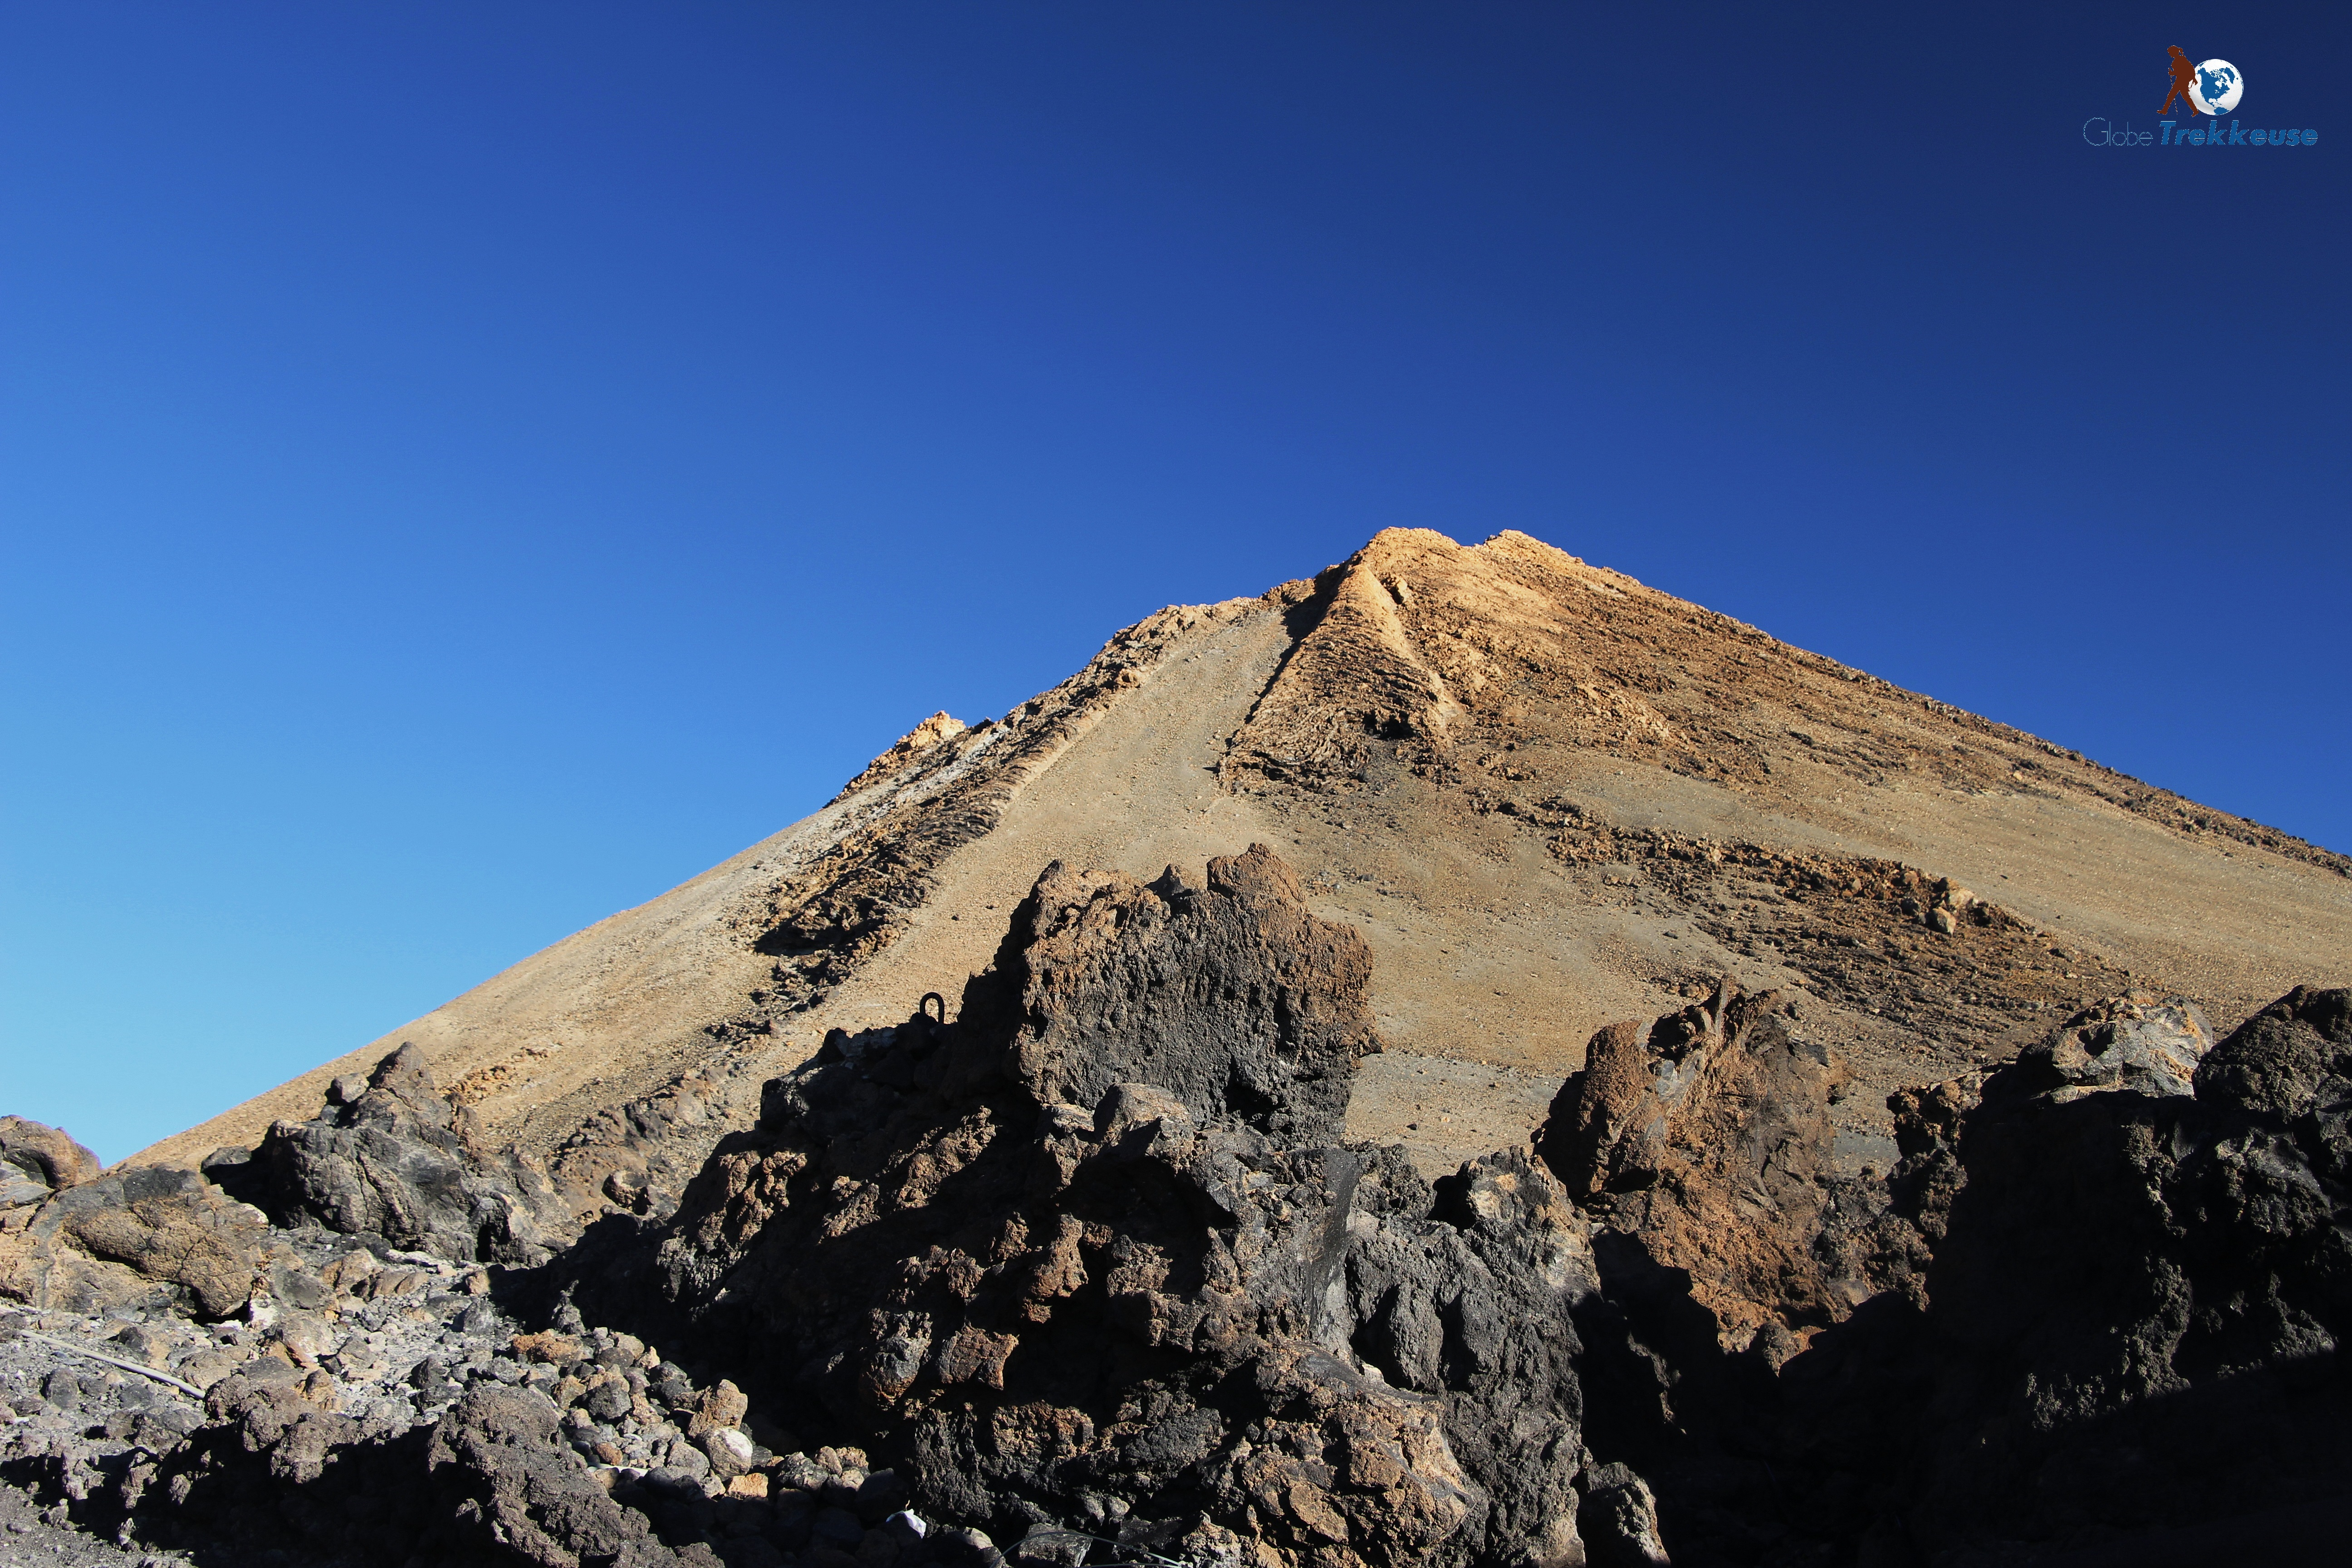 ascension teide volcan tenerife